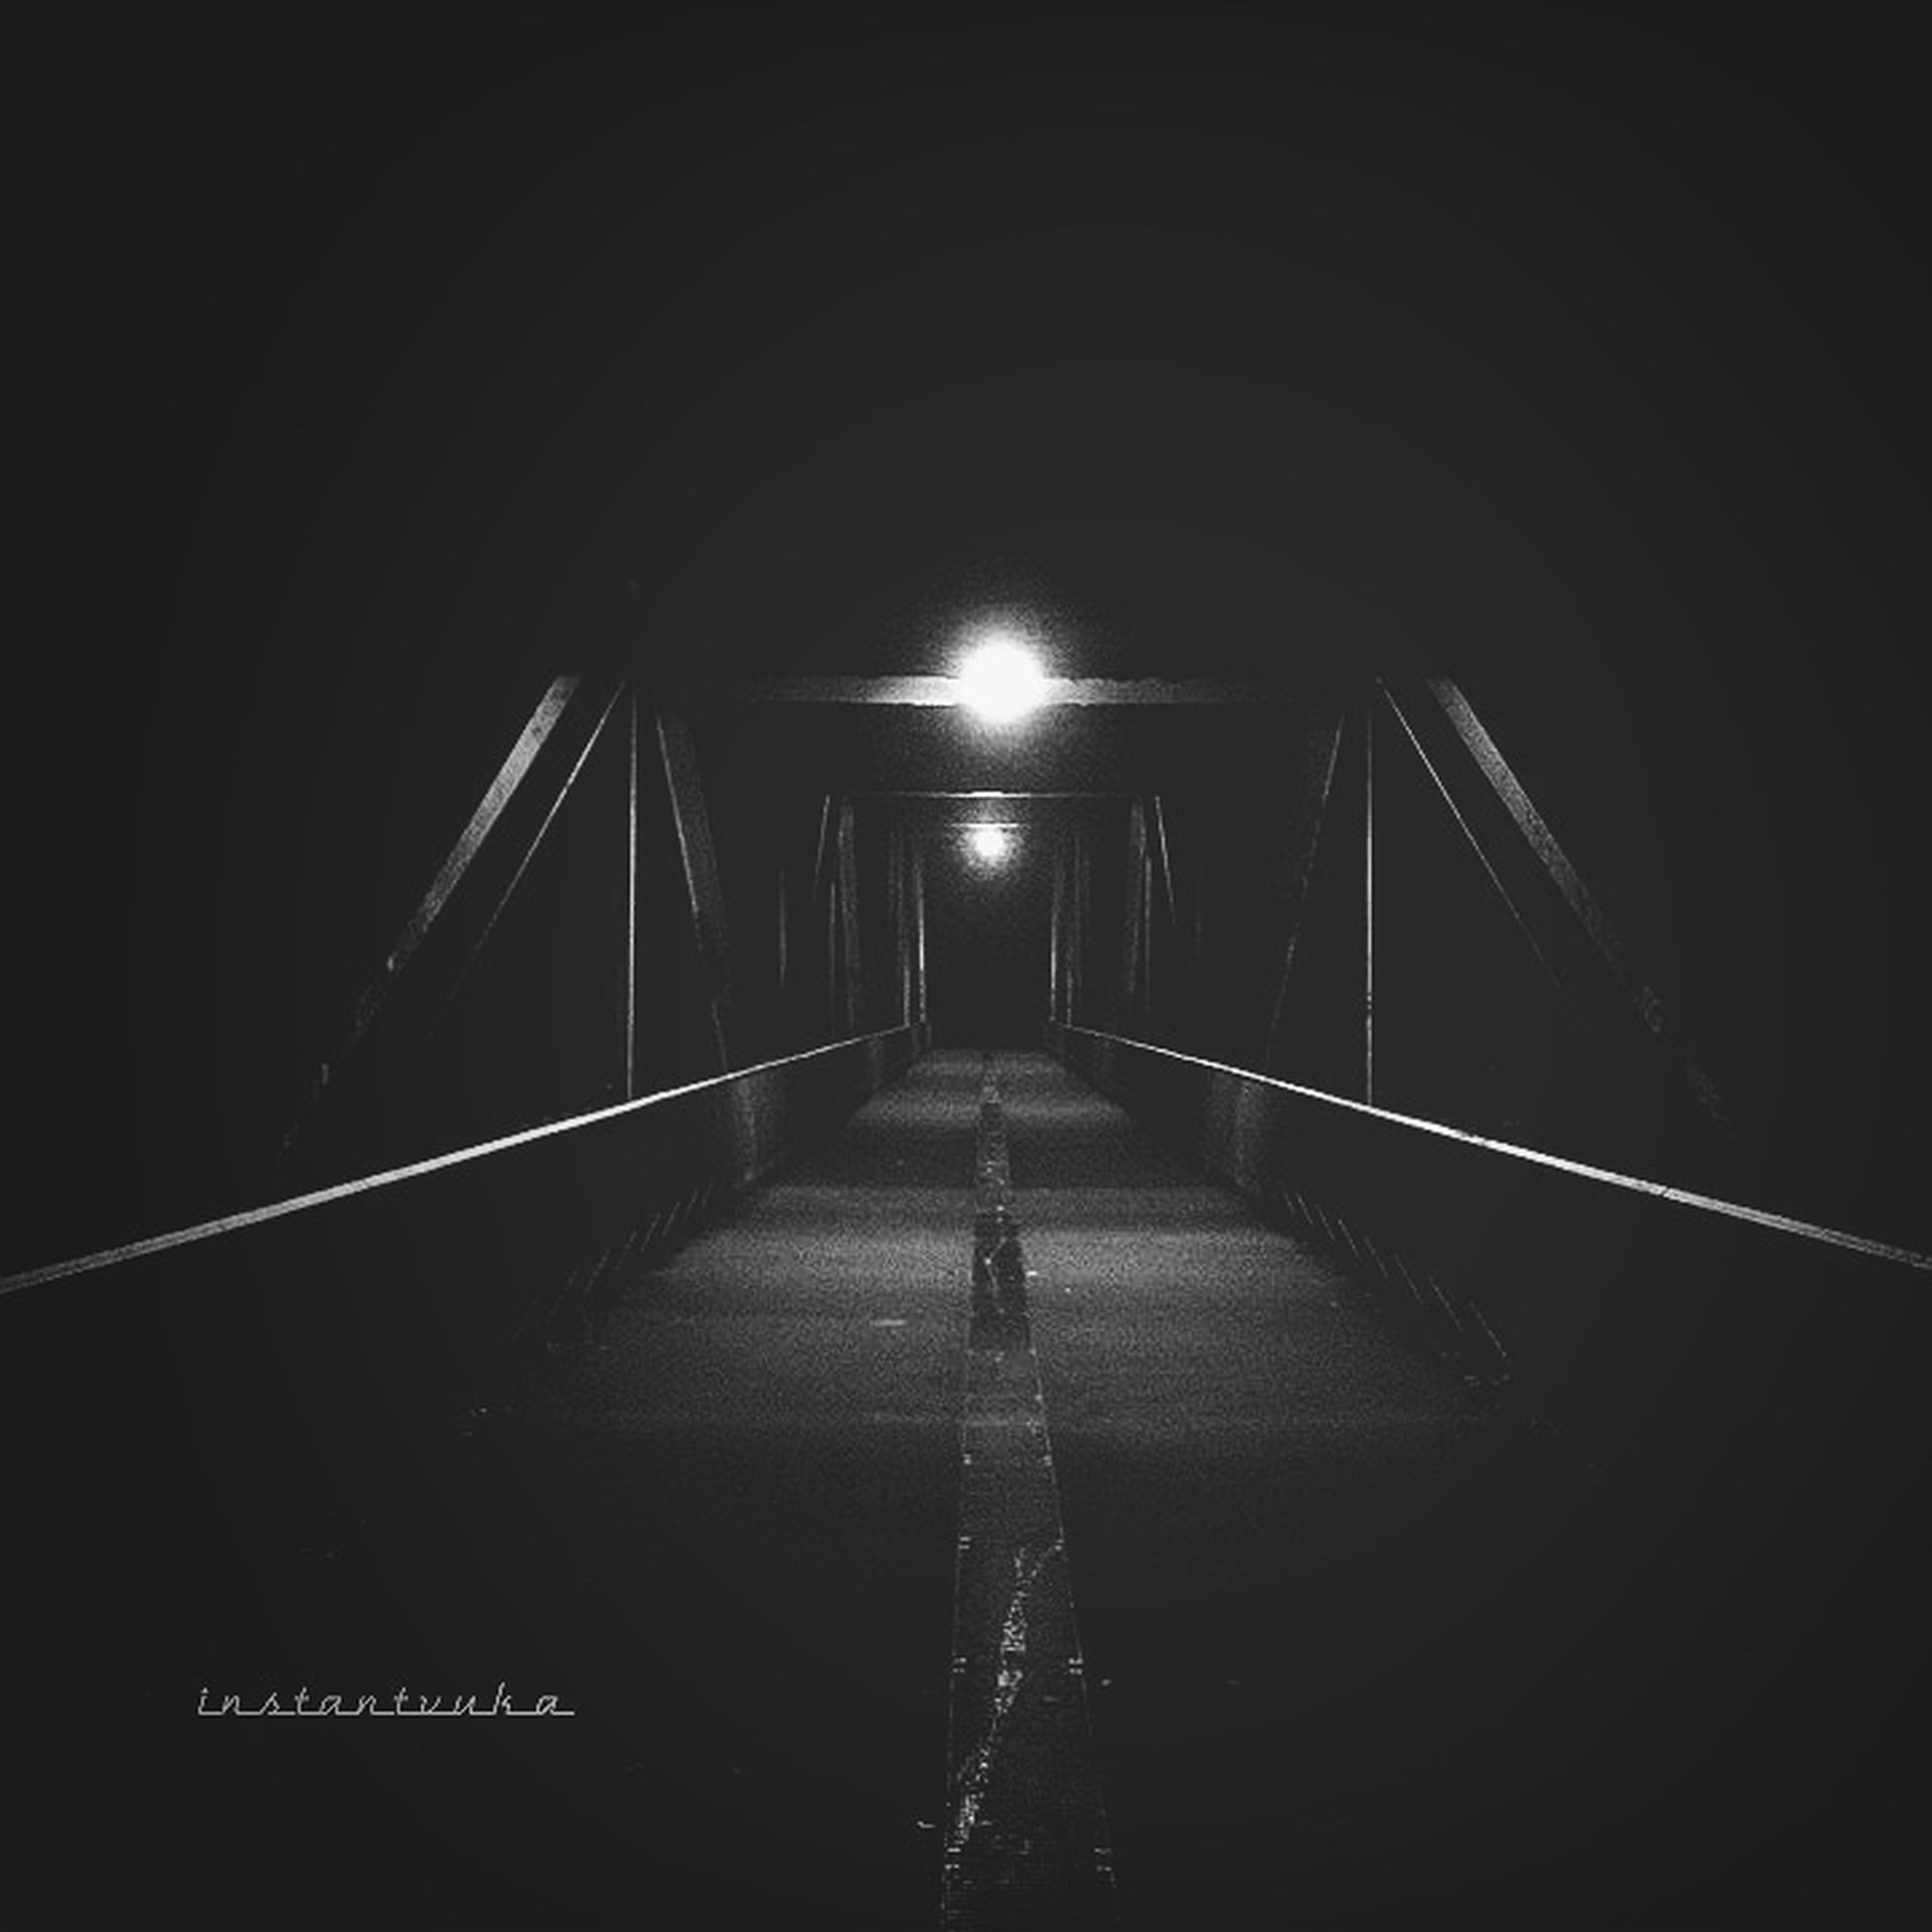 the way forward, transportation, illuminated, tunnel, indoors, night, diminishing perspective, built structure, vanishing point, connection, architecture, bridge - man made structure, dark, arch, railing, lighting equipment, road, one person, engineering, unrecognizable person